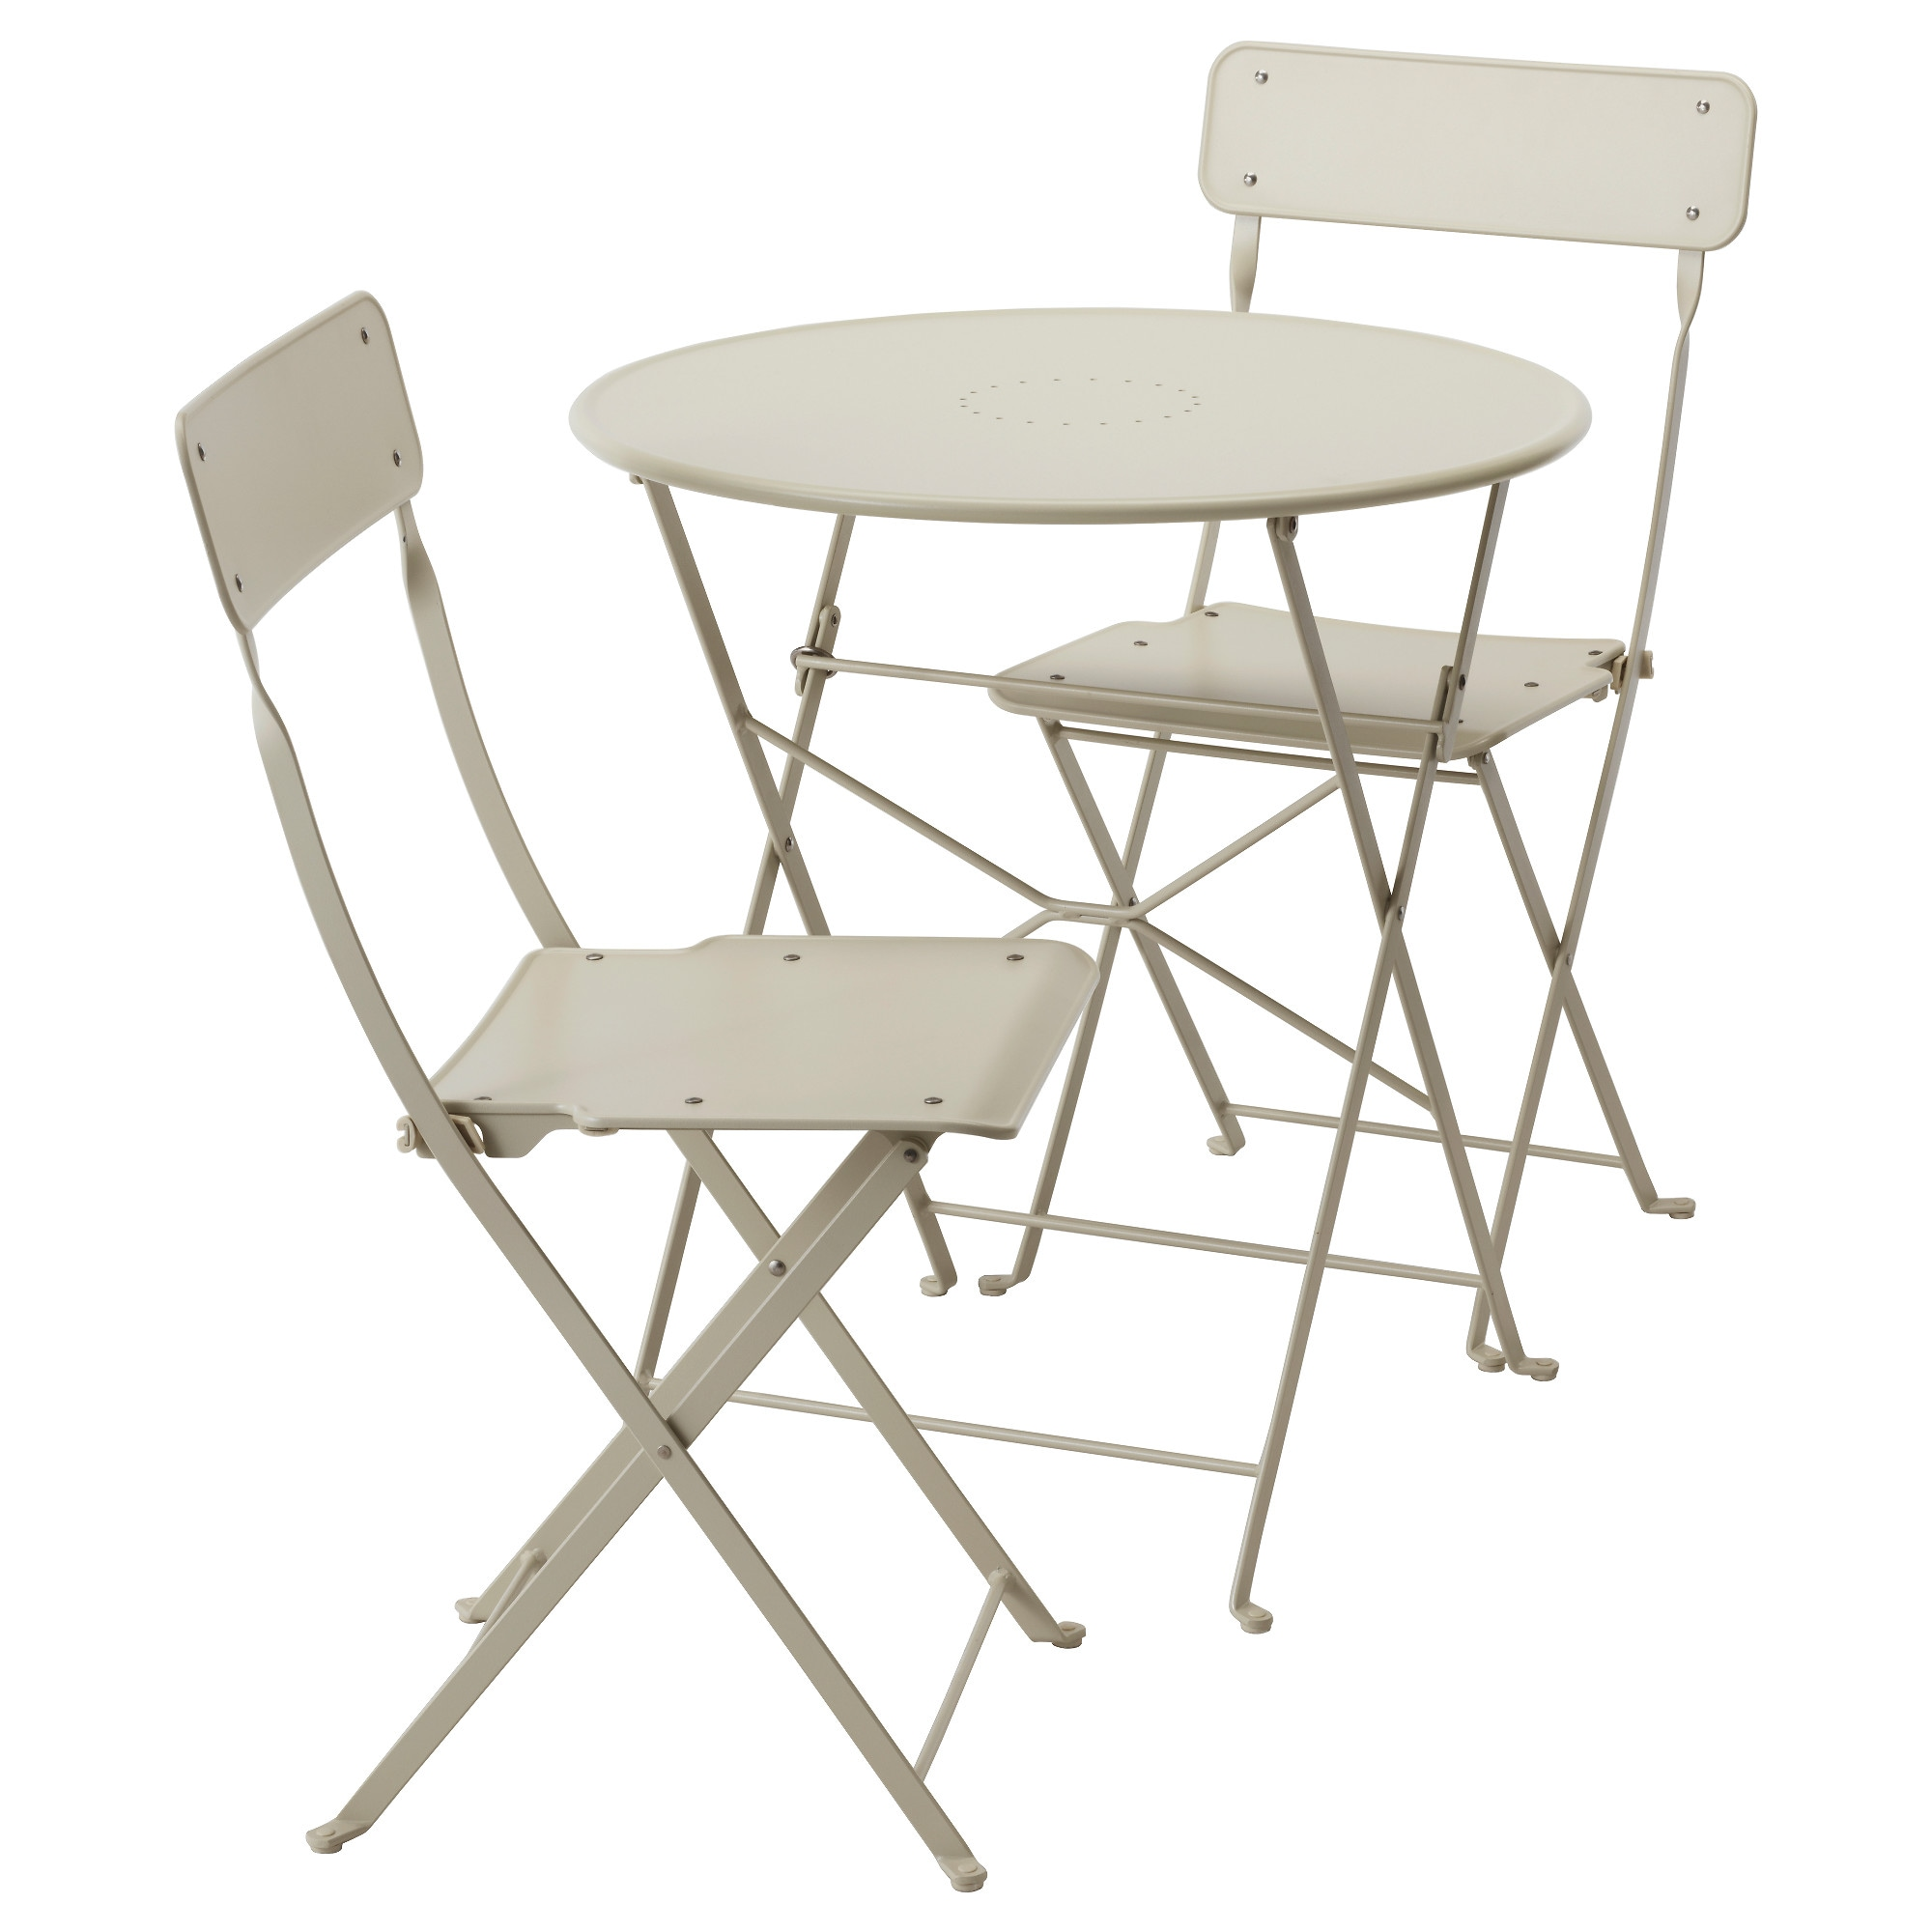 SALTHOLMEN Table And 2 Folding Chairs, Outdoor, Beige Part 23